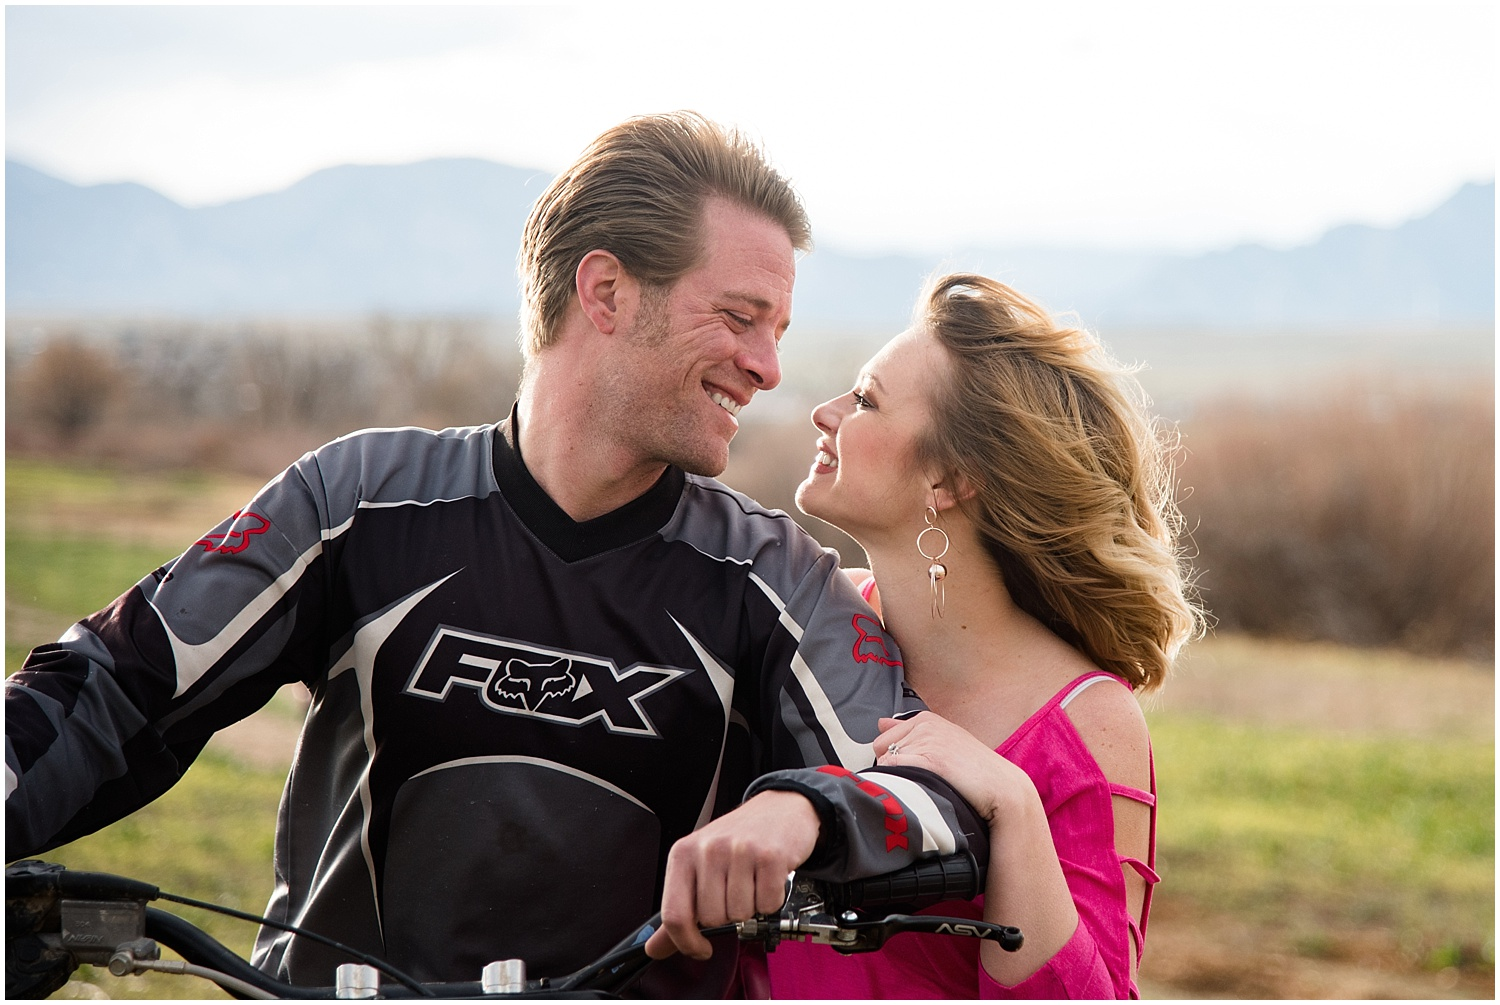 Man on Dirt Bike Looking into Woman's Eyes |Dirt Bike Engagement Session | Standley Lake Photographer | Rocky Mountain Elopement Photography | Farm Wedding Photographer | Apollo Fields Photojournalism